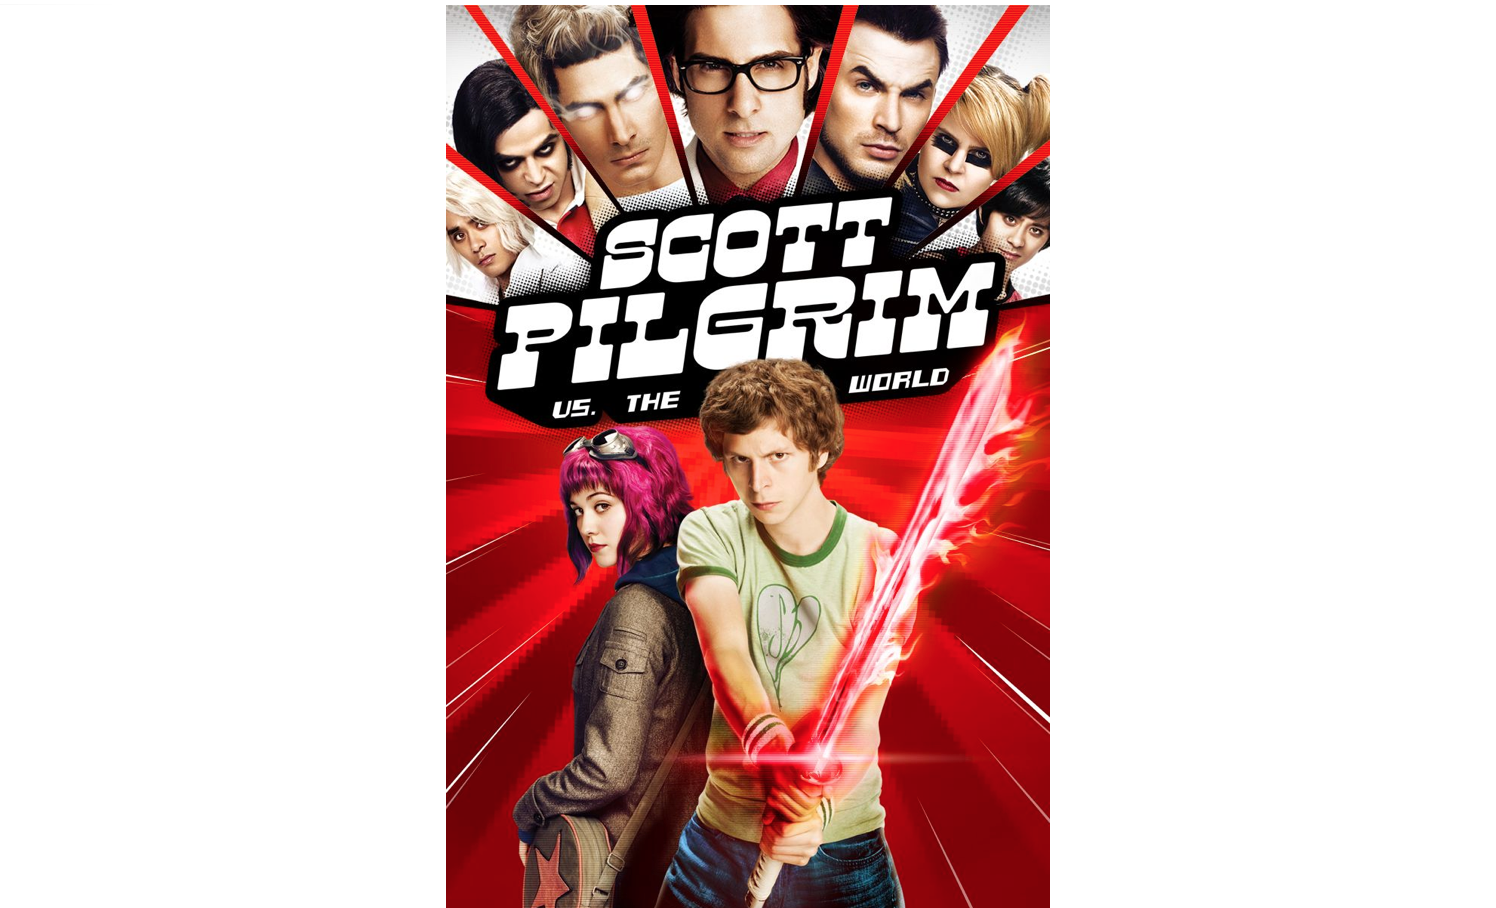 ScottPilgrim Slider Image